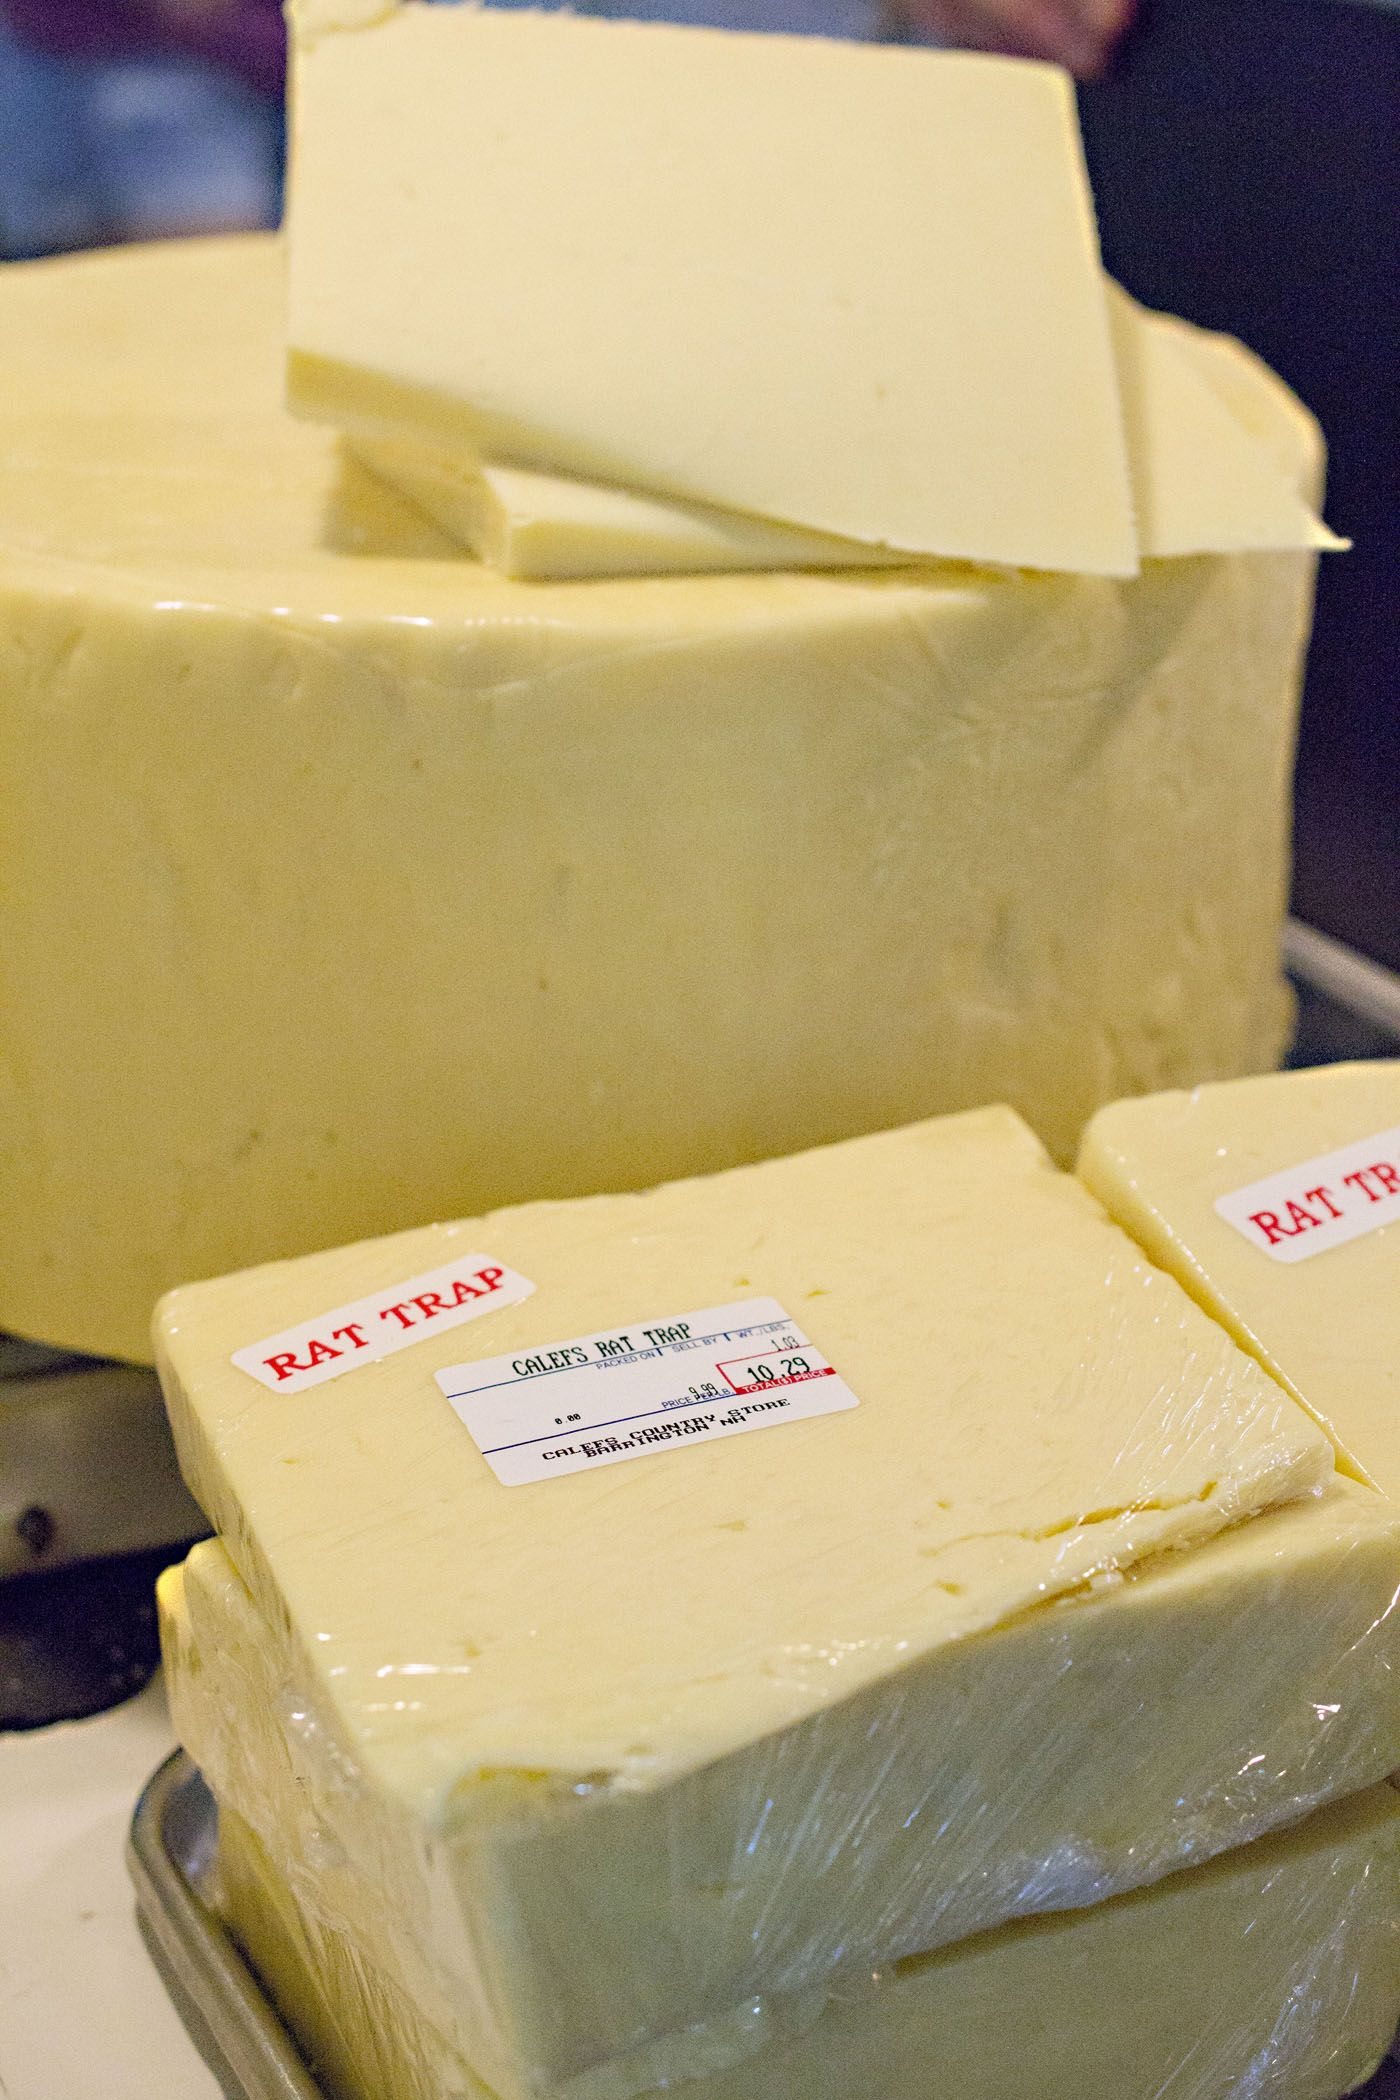 Rat trip cheese from Calef's Country Store